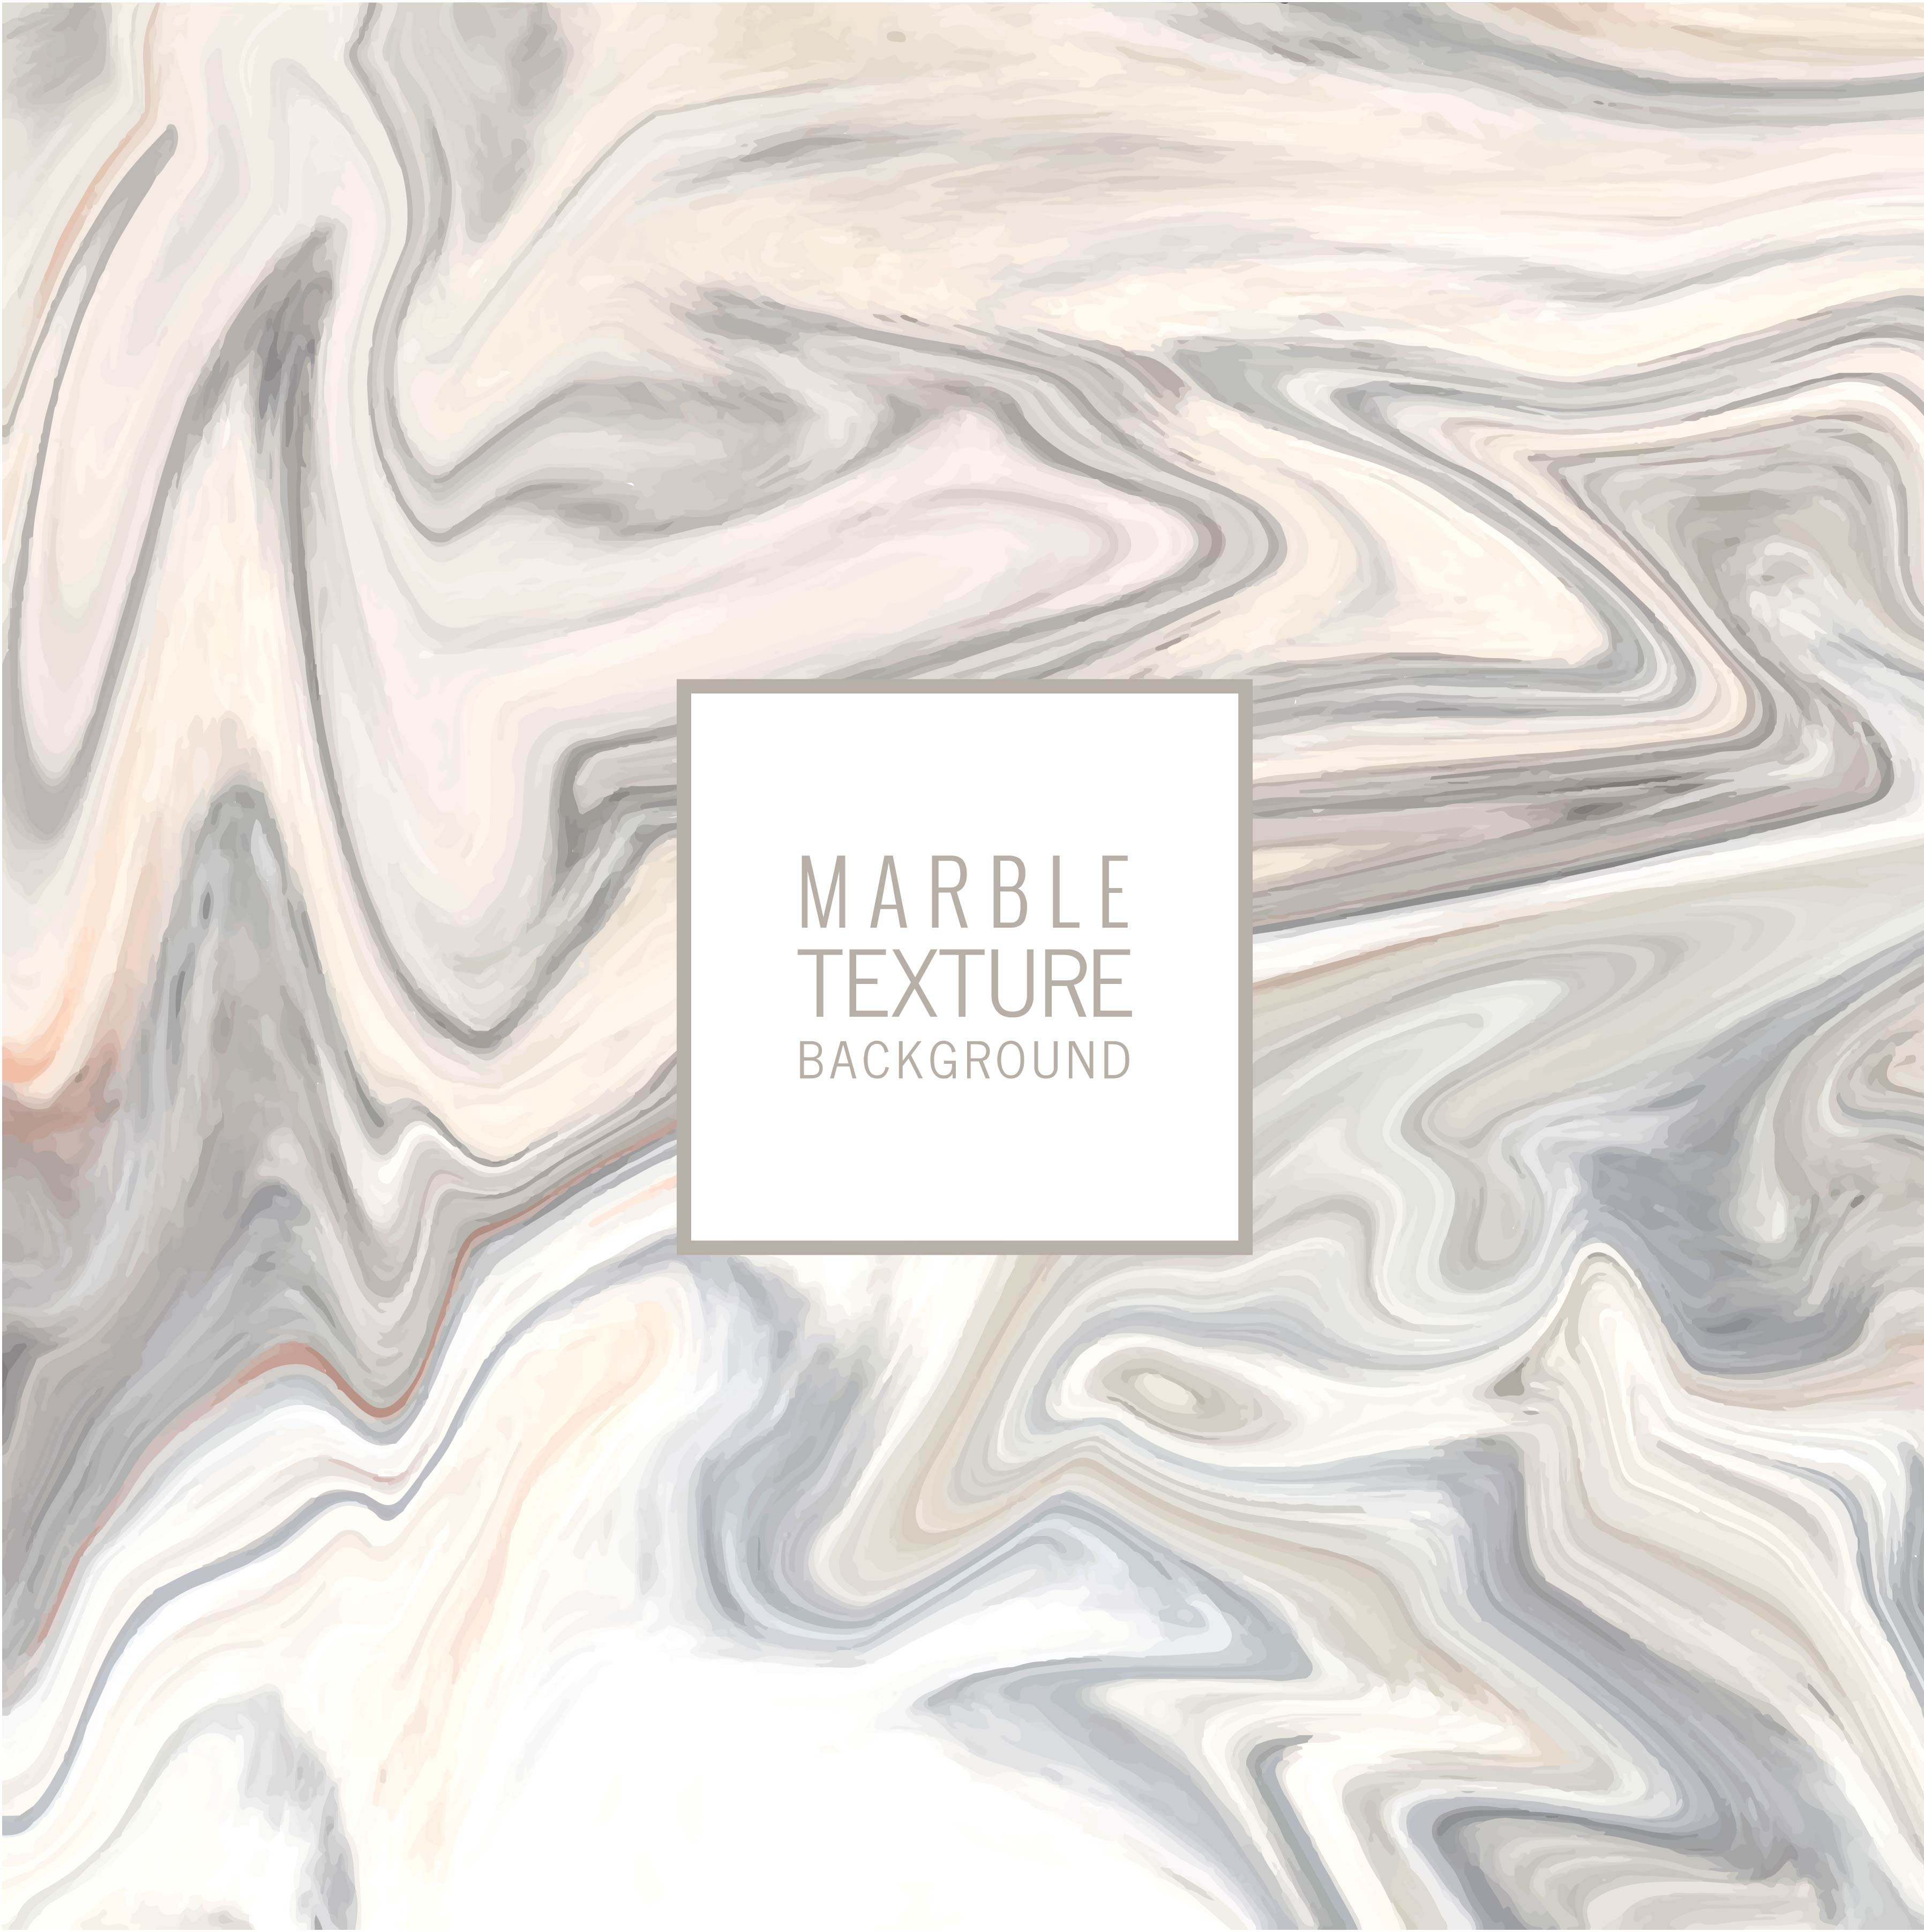 Realistic Marble Texture Vector Background Download Free